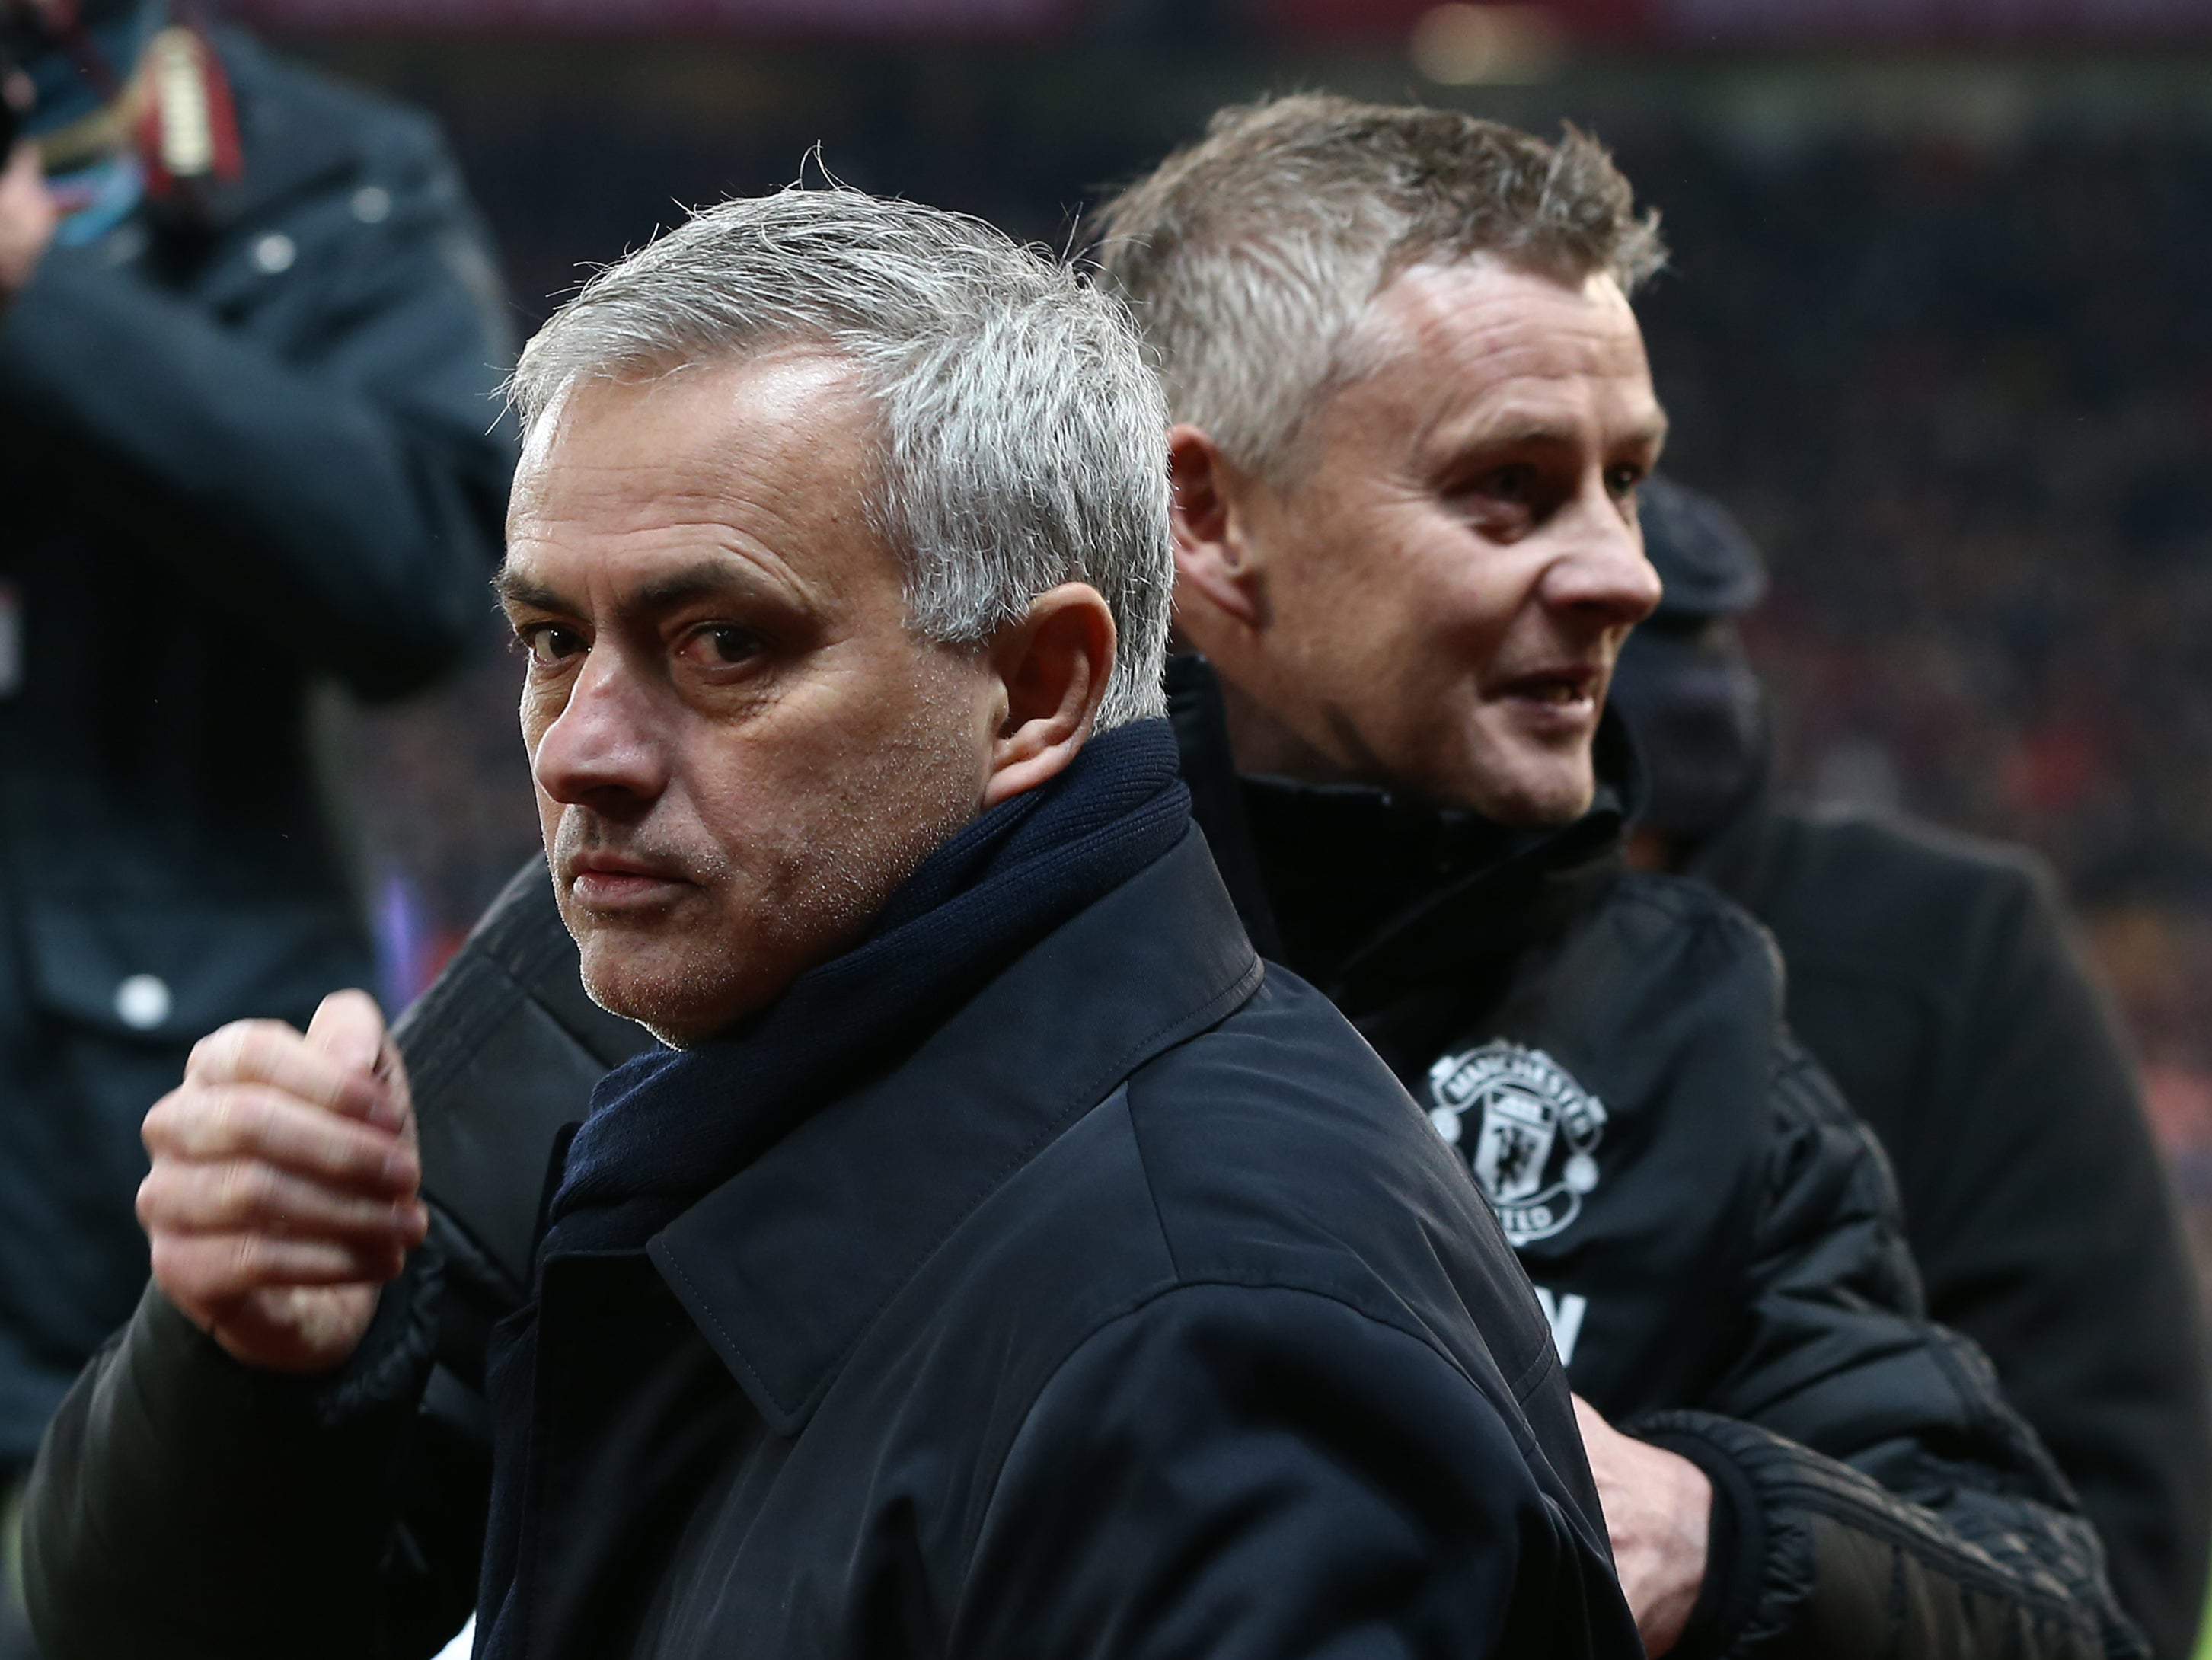 Jose Mourinho hits back at Ole Gunnar Solskjaer's goalposts joke with Manchester United penalty jibe - The Independent